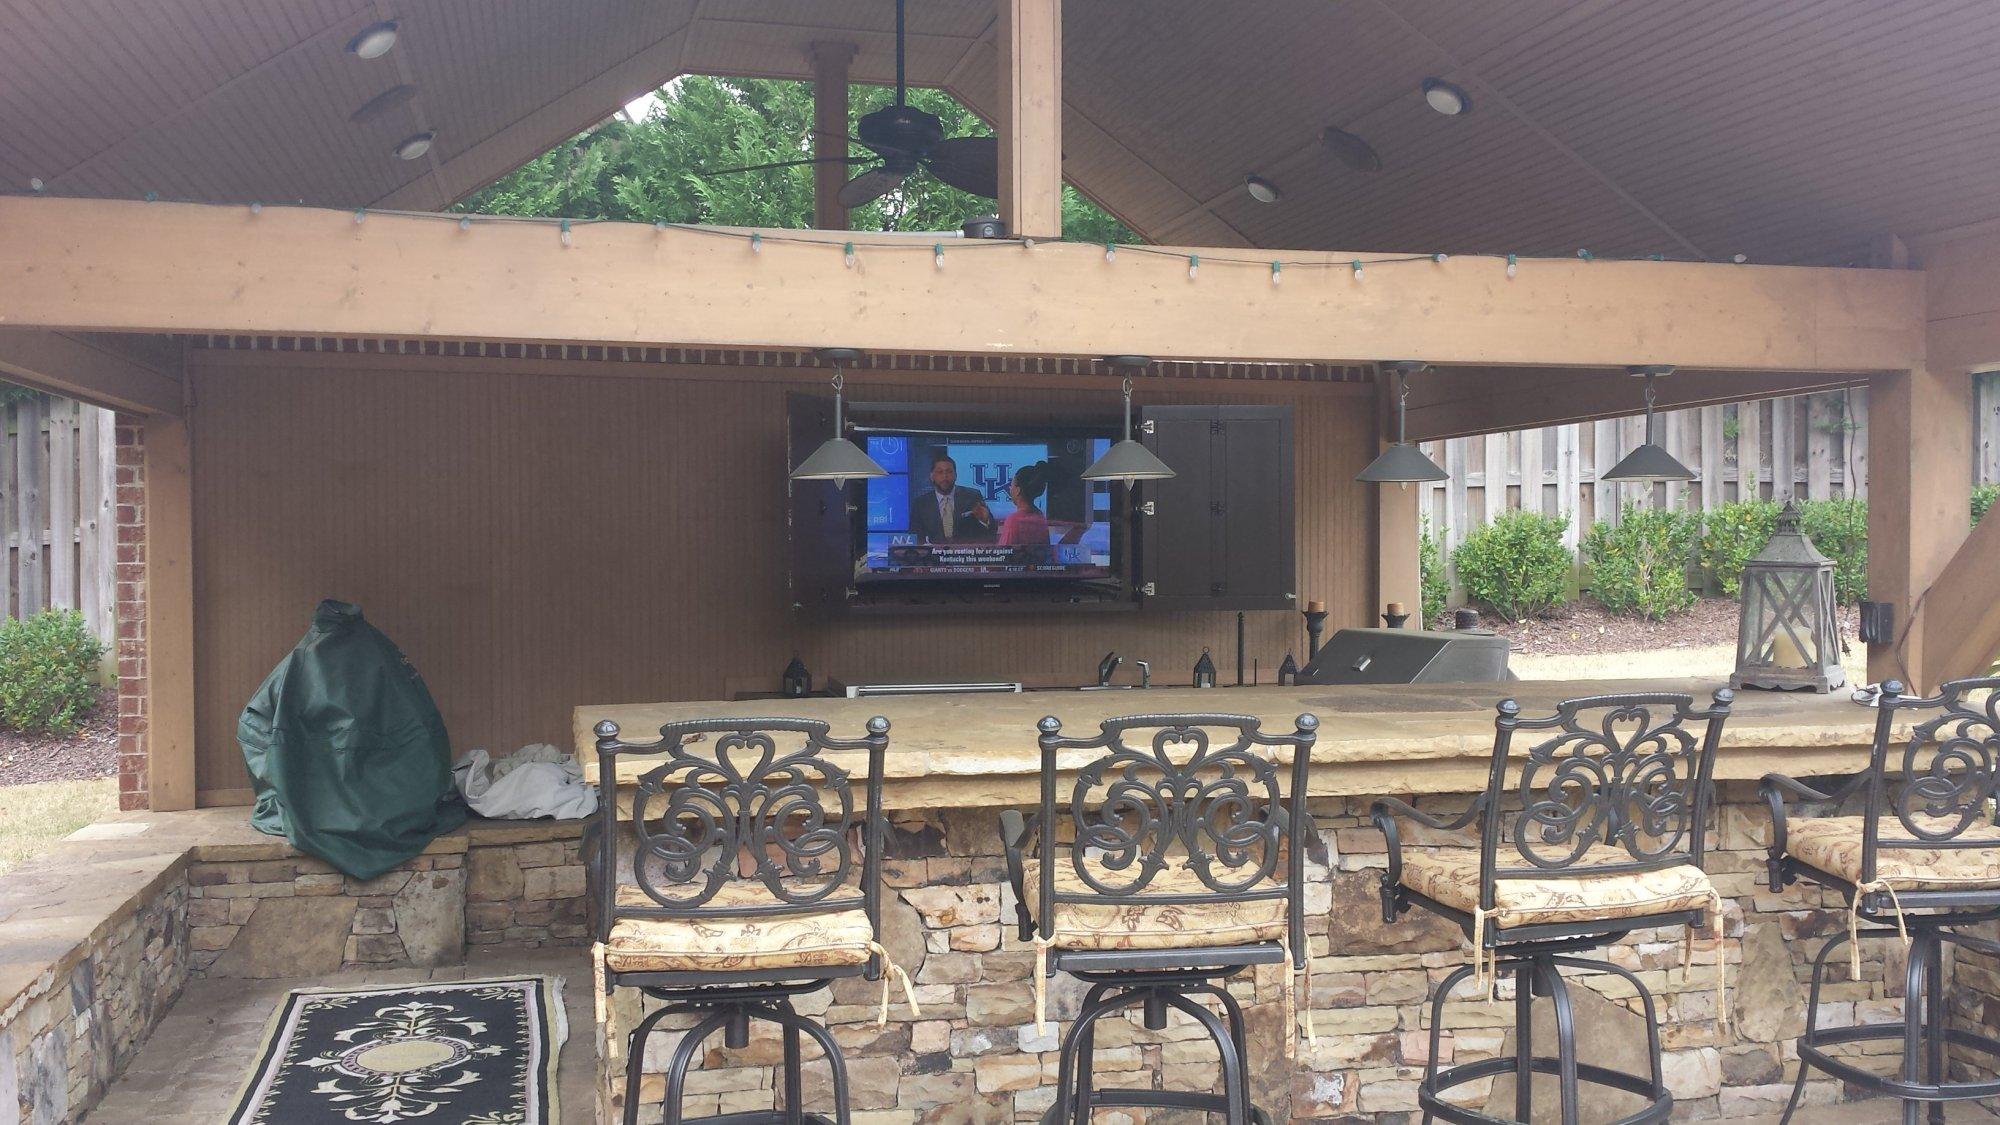 hight resolution of consultation making the right choice easy do you want your new tv mounted over the fireplace or a weather proof flat panel connected in your outdoor